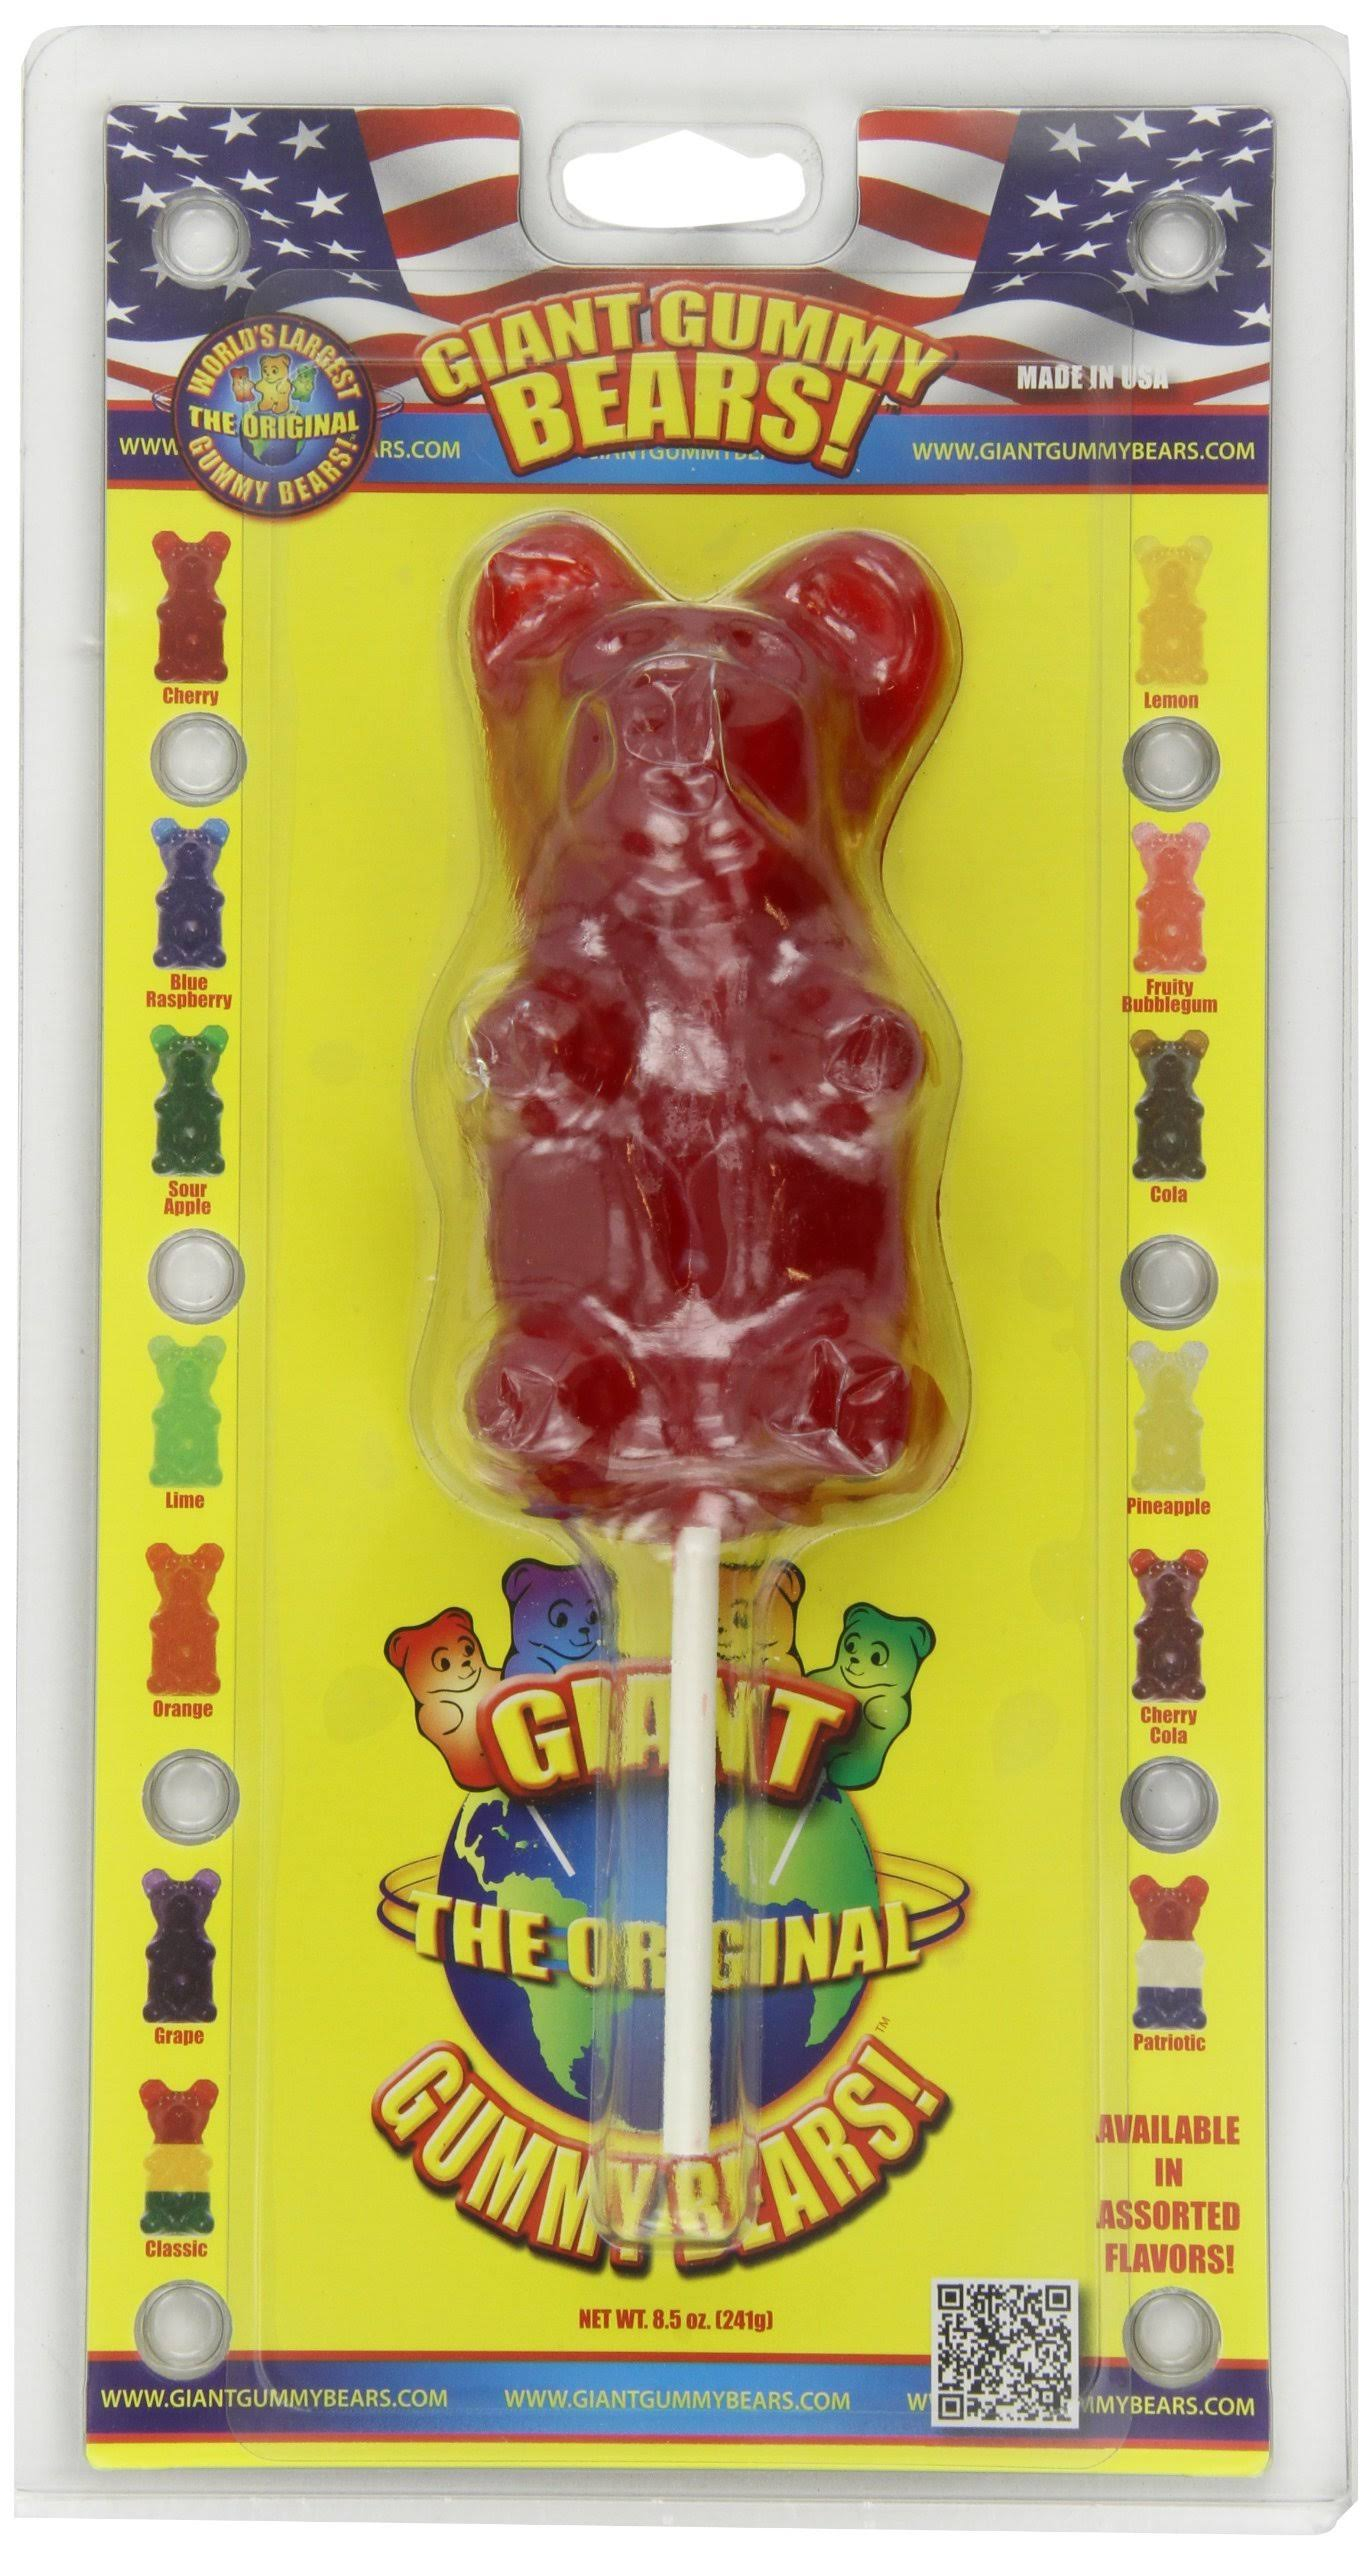 Giant Gummy Bears Candy - Cherry